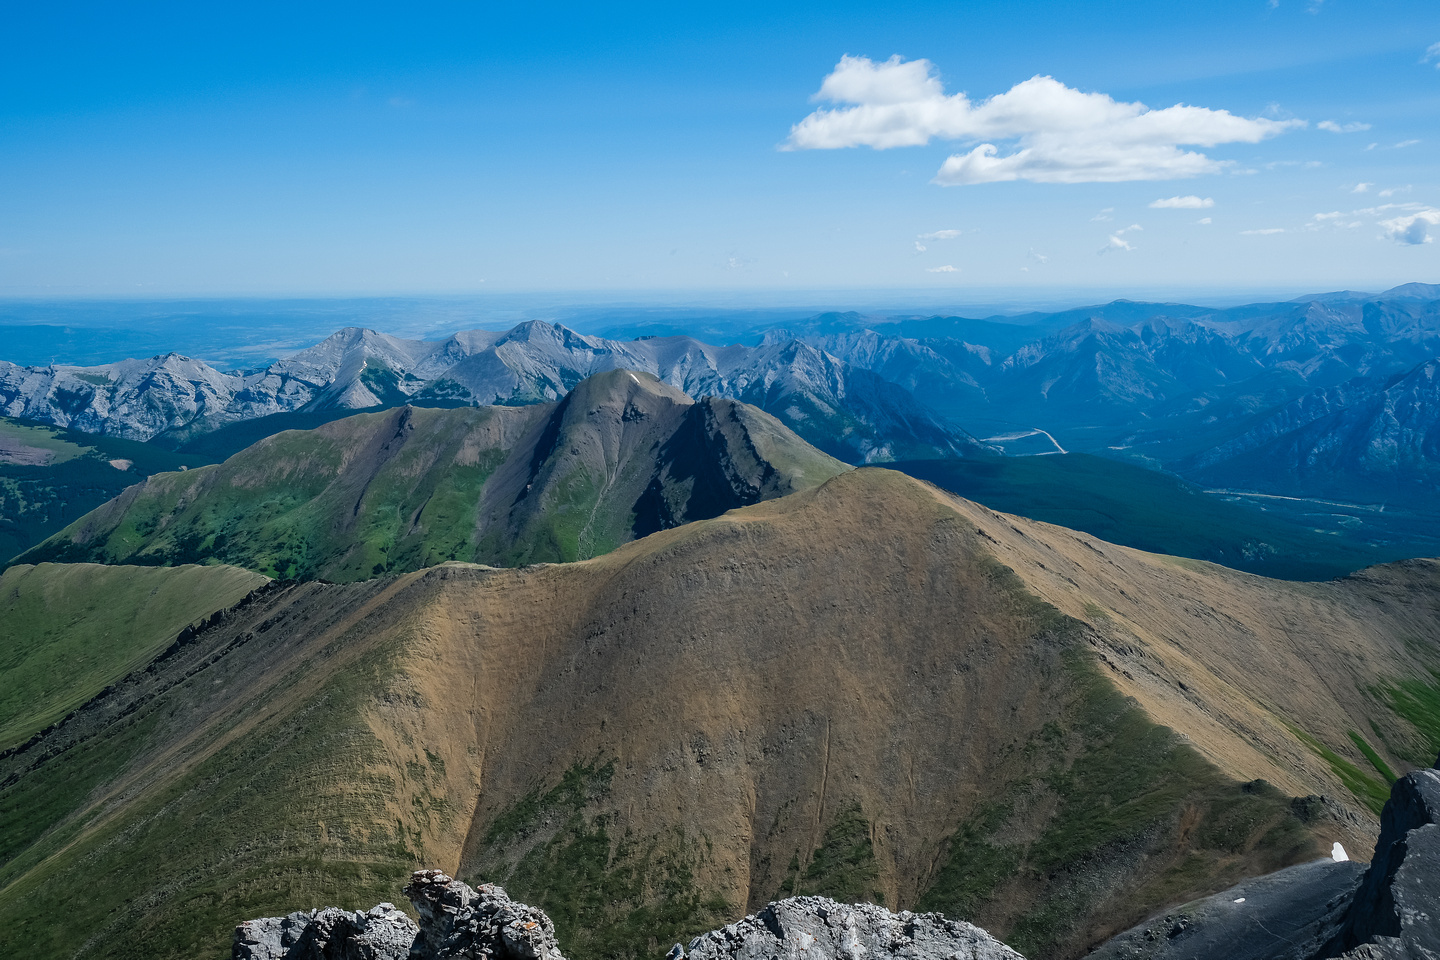 Views over Mount Allan and Collembola towards Skogan and Lorette.